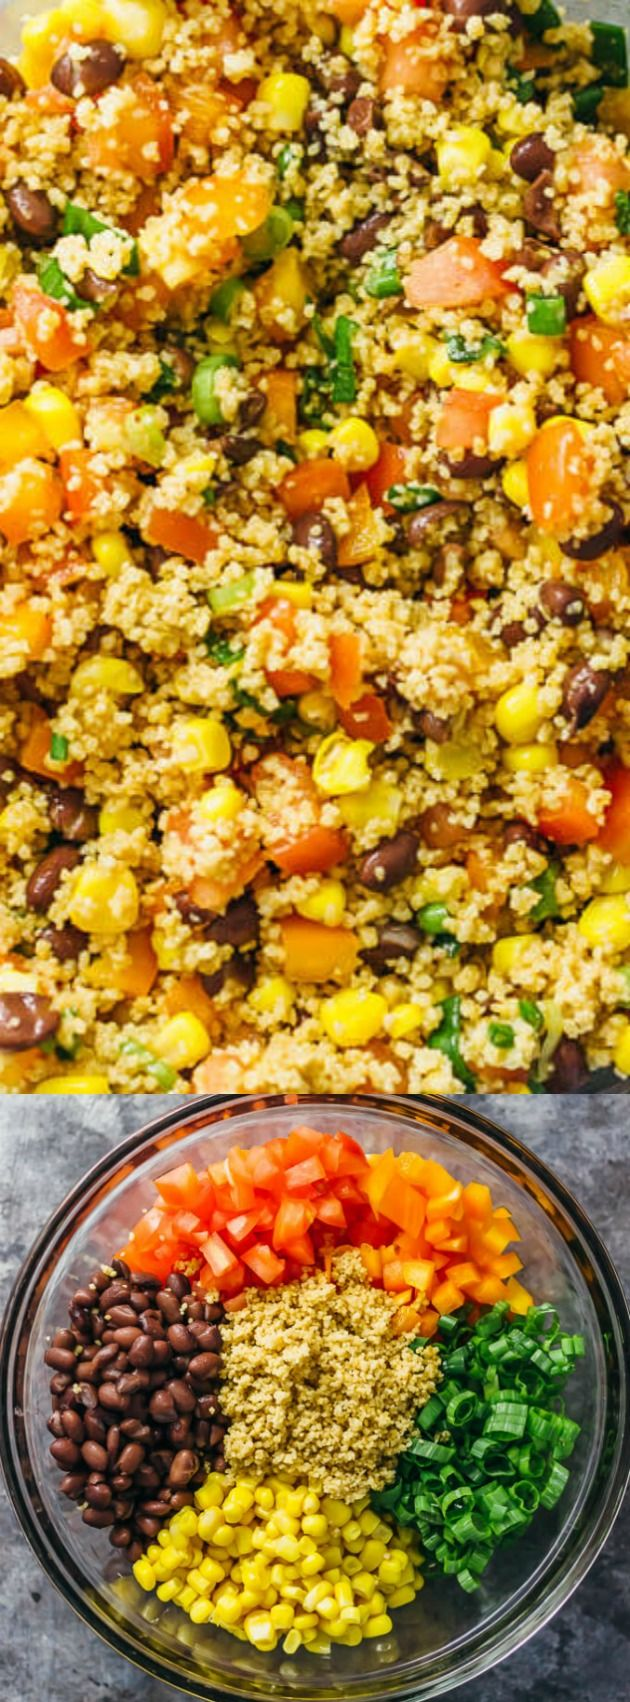 This Best Southwest Couscous Salad from Savory Tooth is easy to make and has a summery southwestern vibe. It's perfect for get-togethers because you can prep all of the ingredients ahead of time and let the flavors marinate in the fridge!